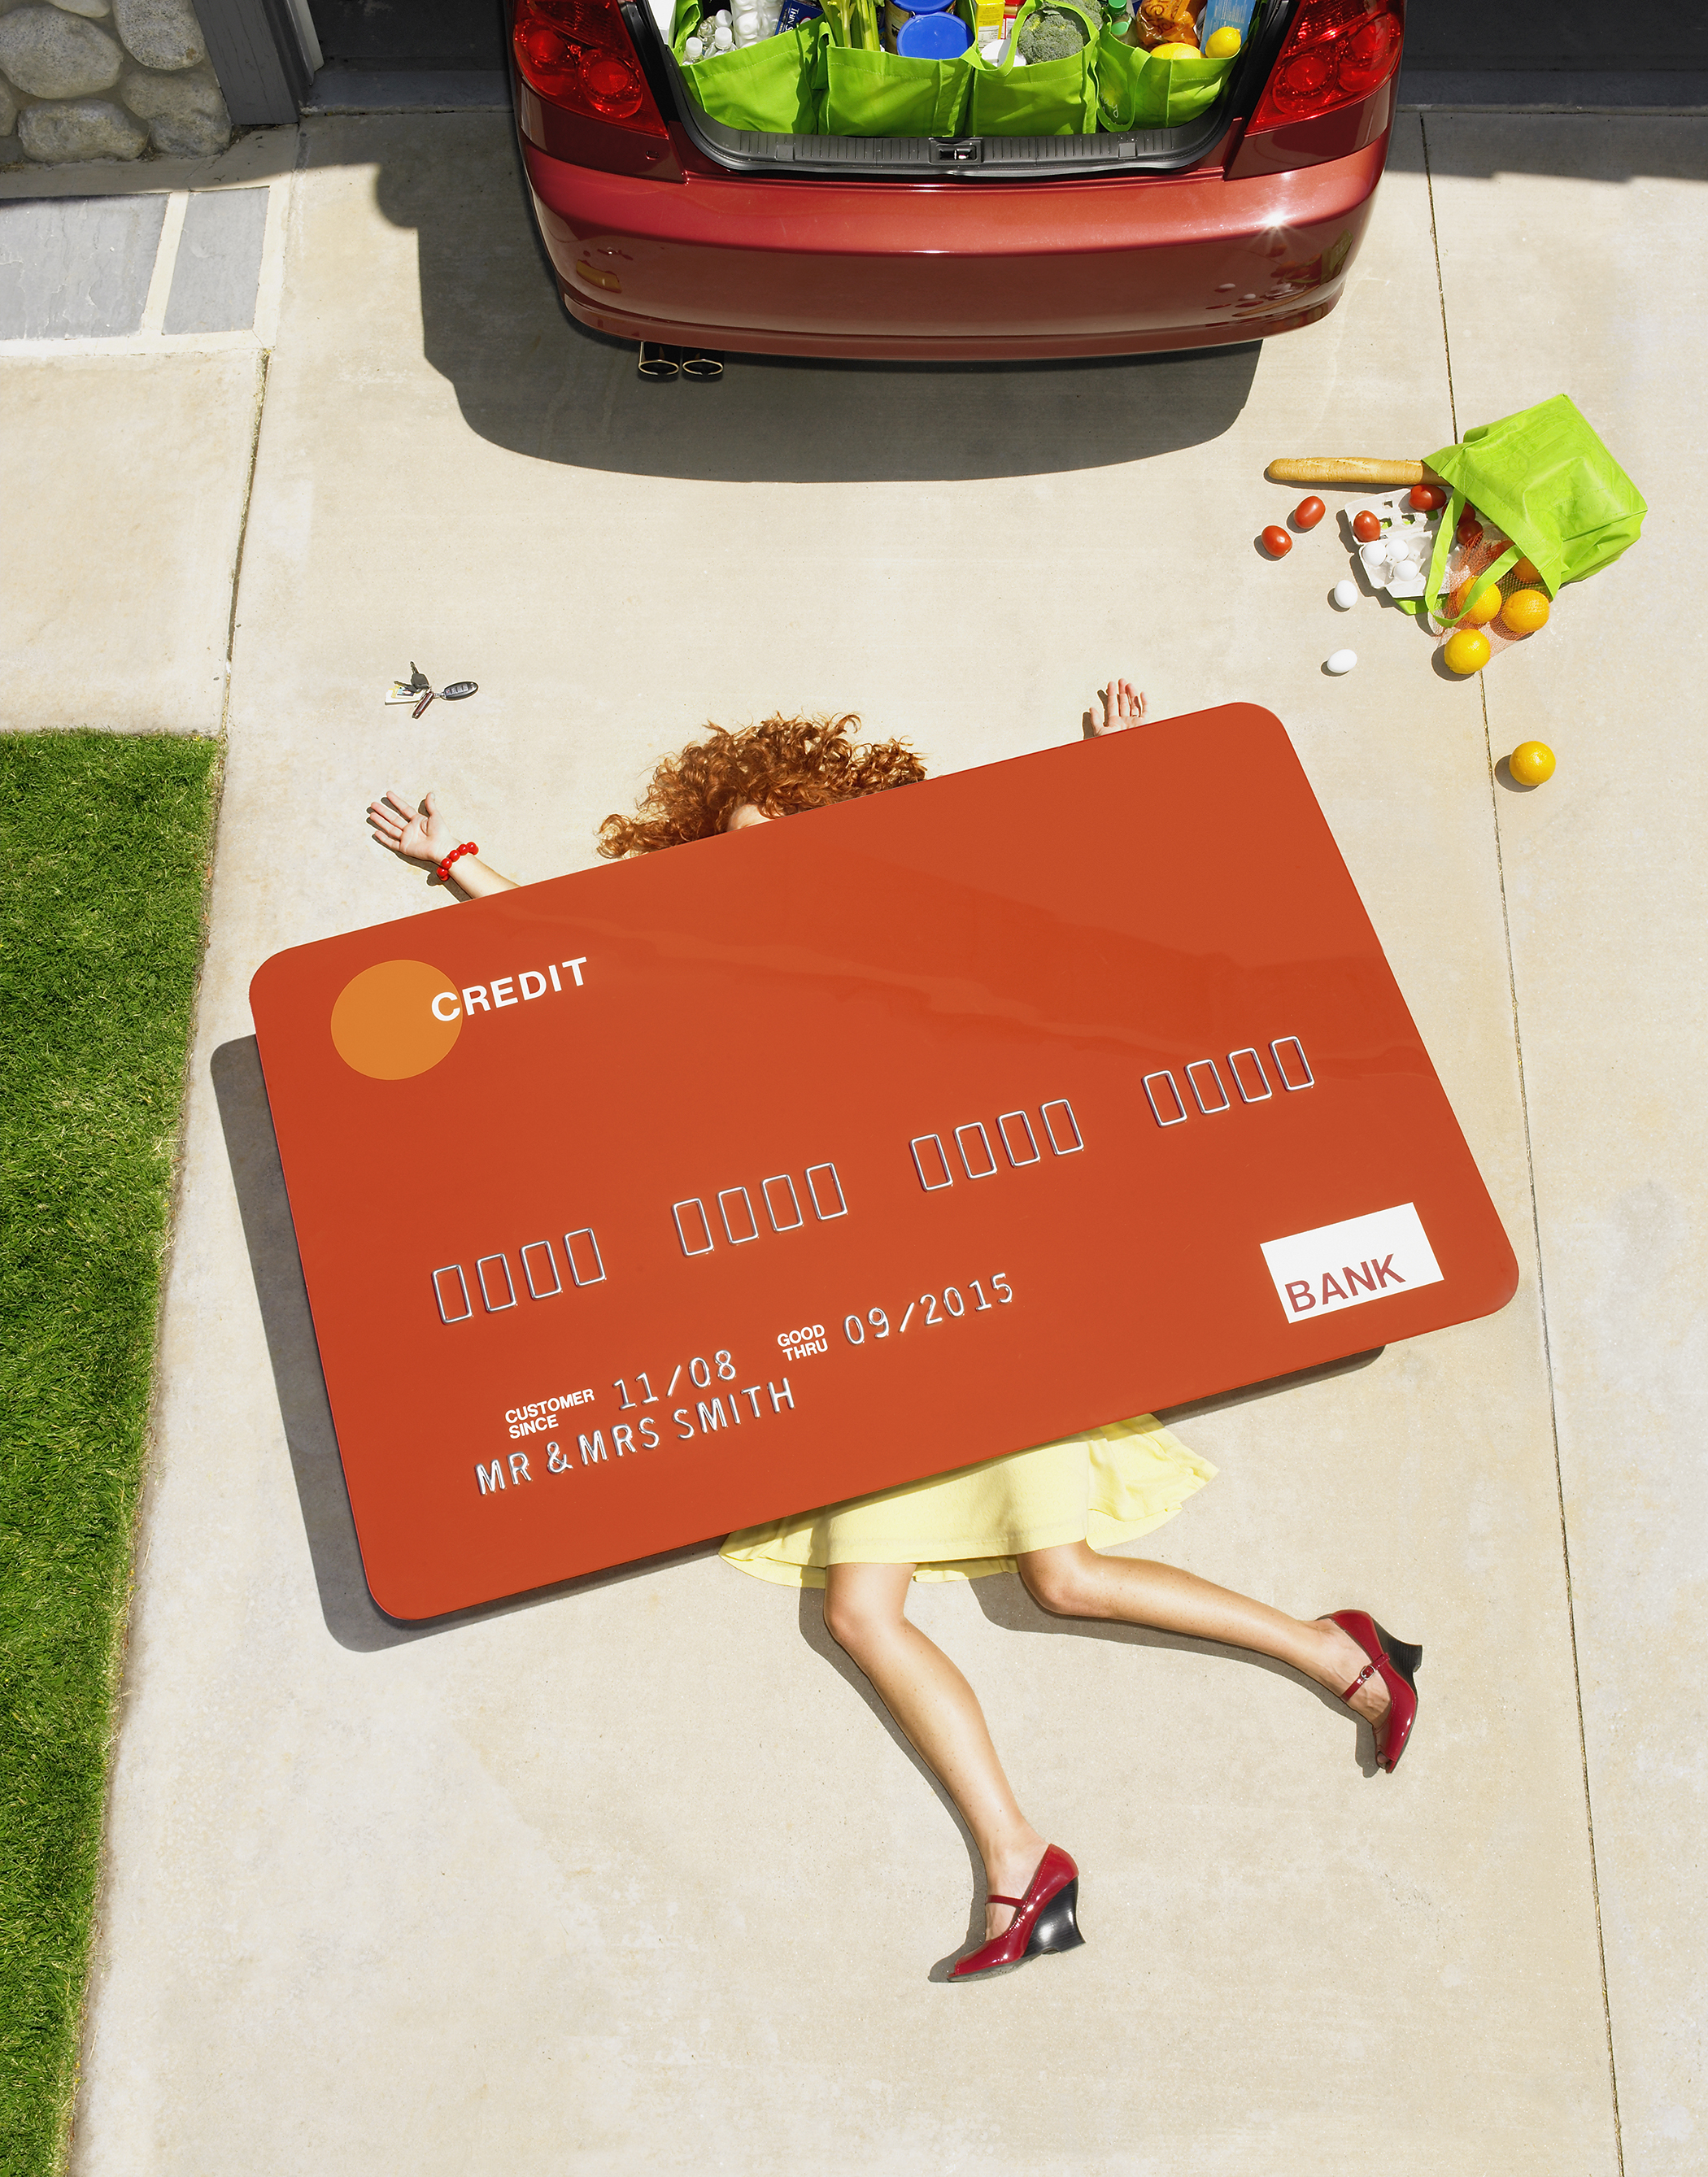 5 Weird Ways Credit Card Debt Can Hurt You